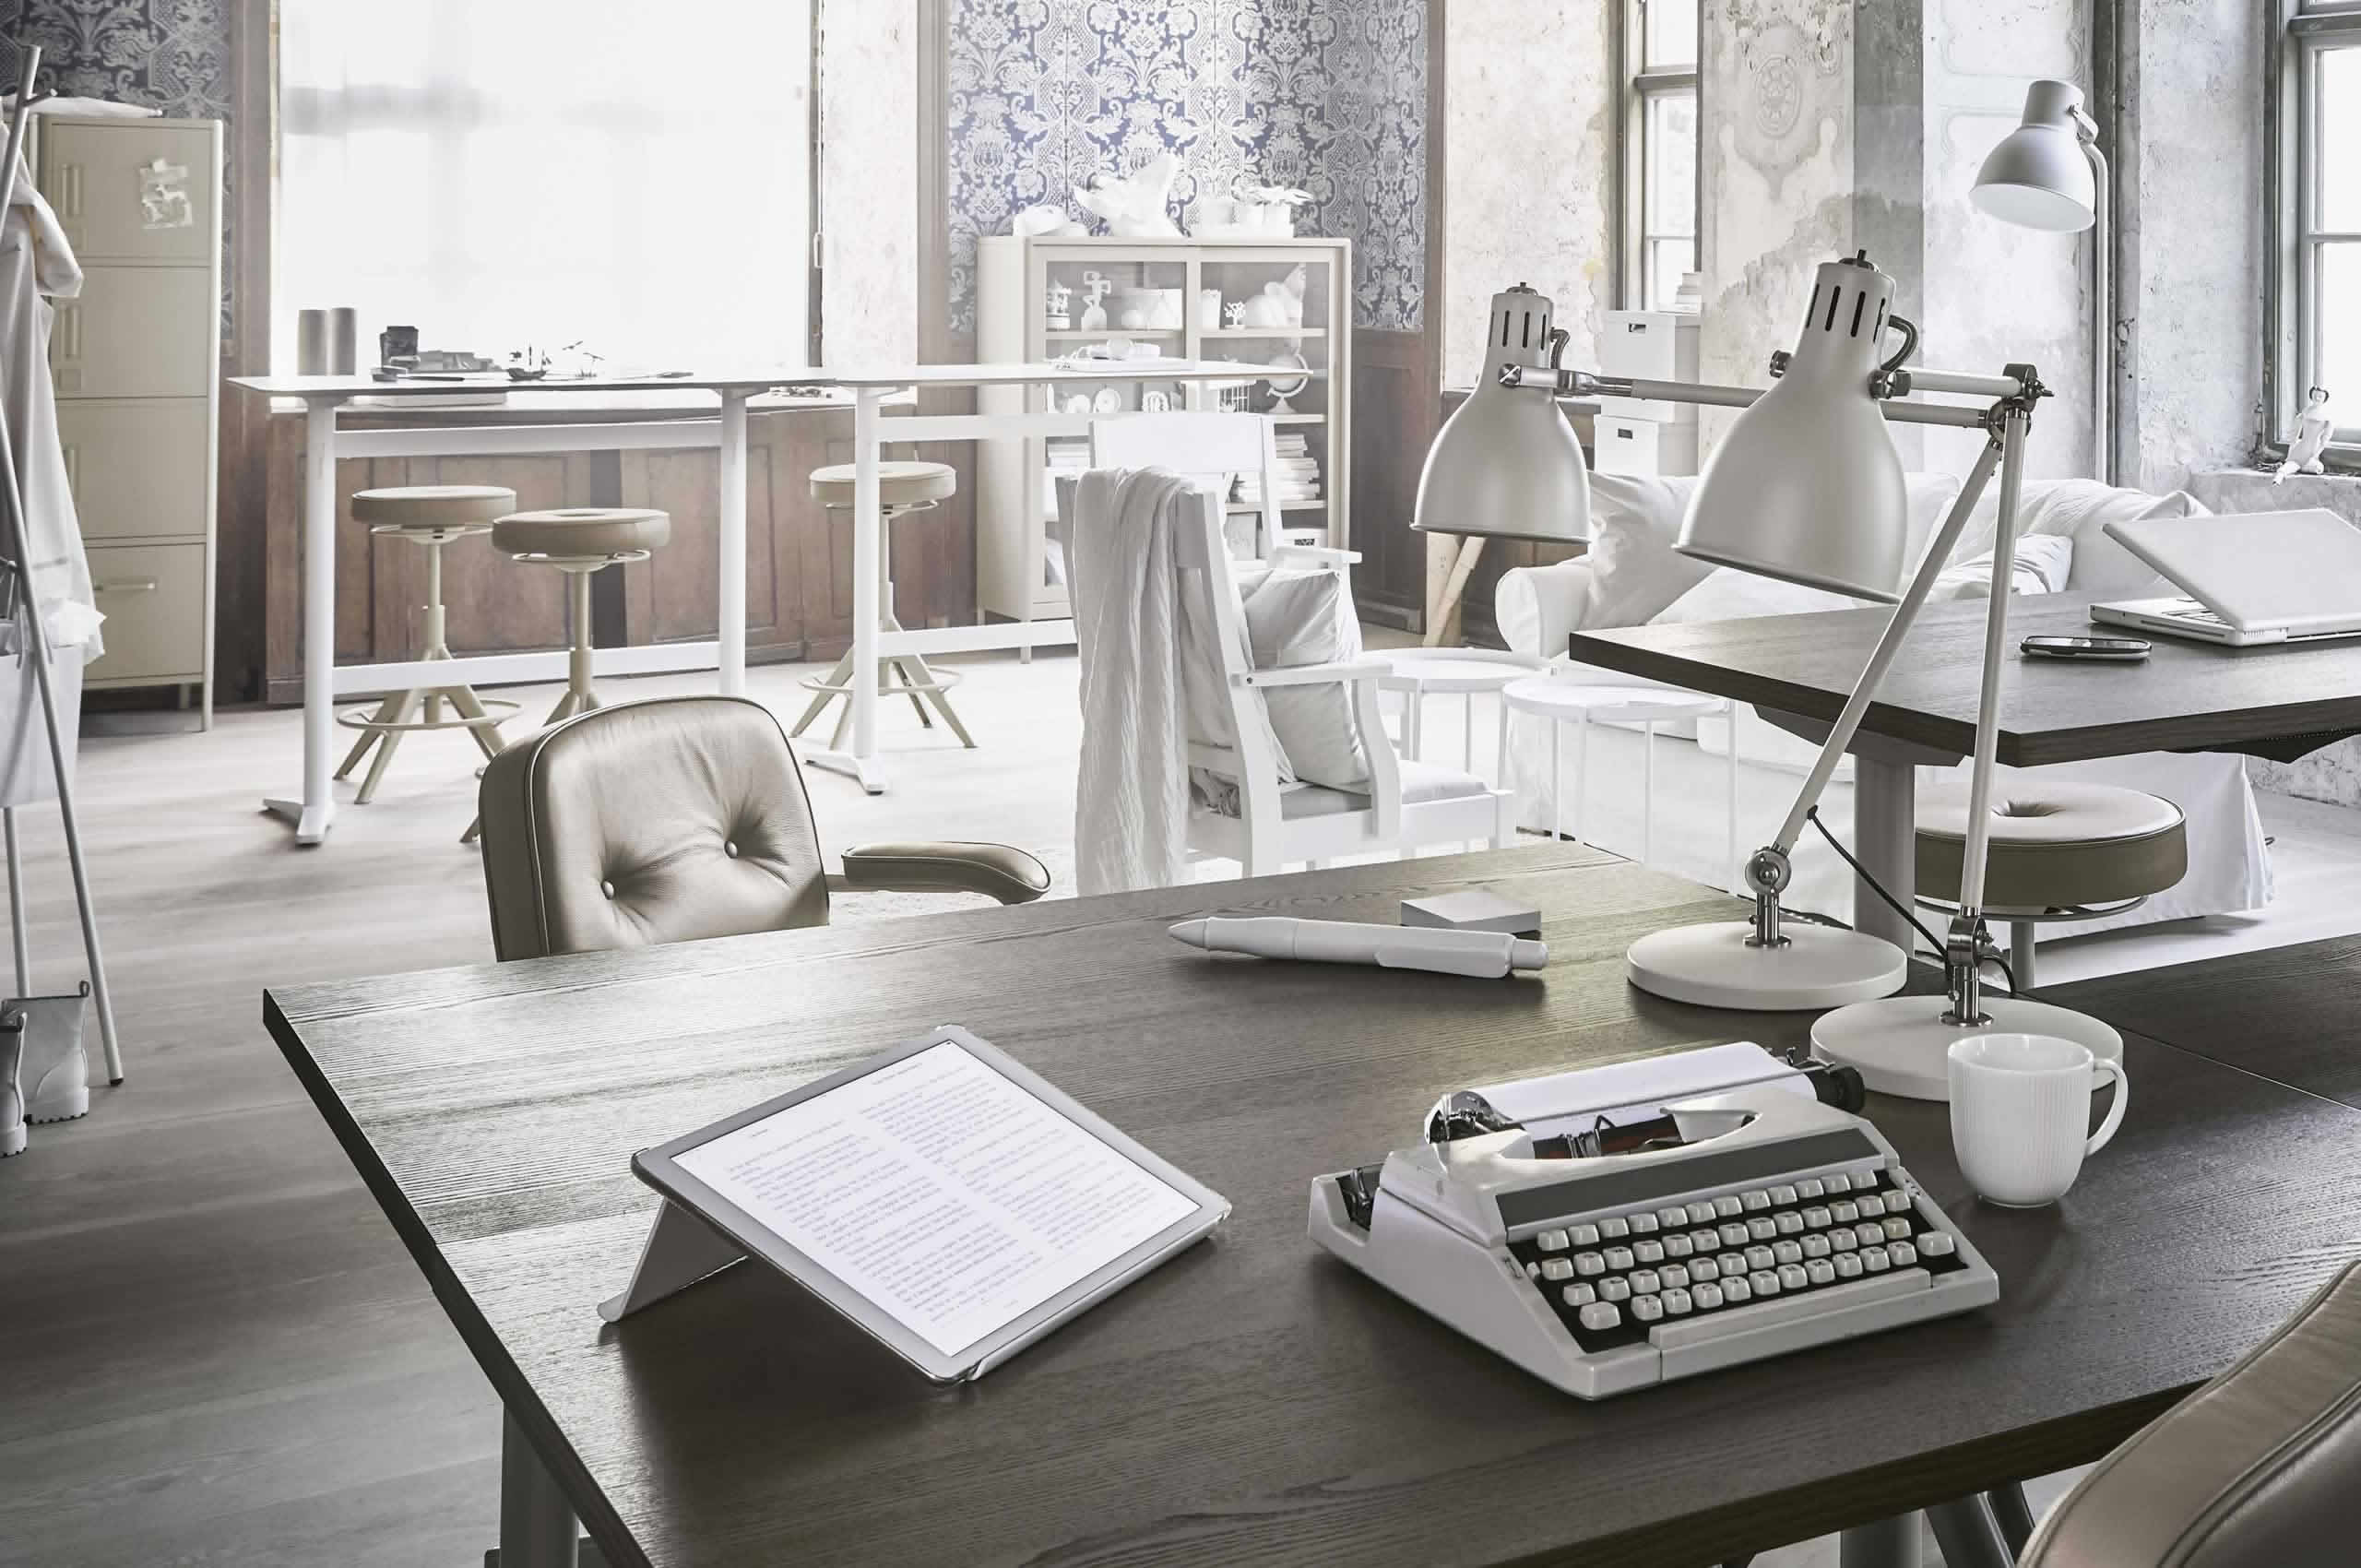 IKEA Ideas - 4 new ideas to improve your work space